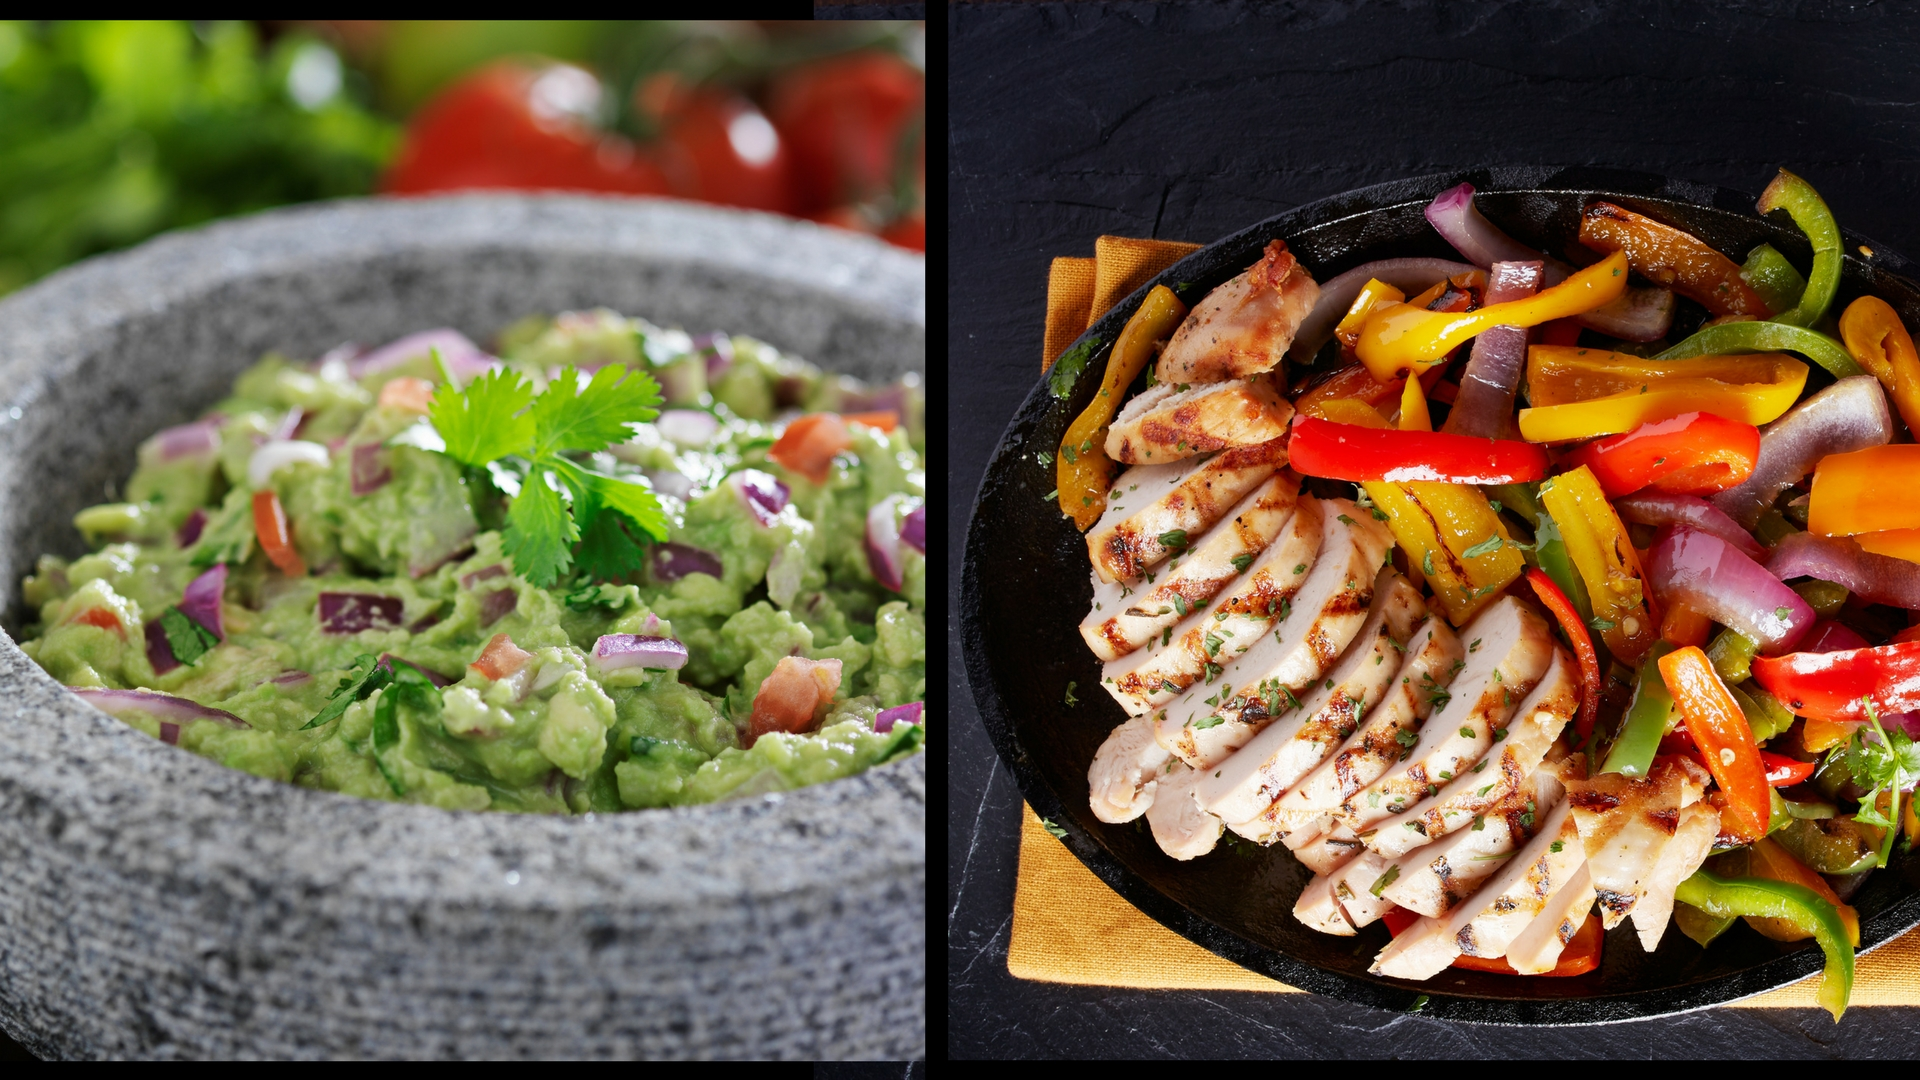 TOP SELLERS: FRESH TABLE GUACAMOLE AND SIZZLING FAJITAS